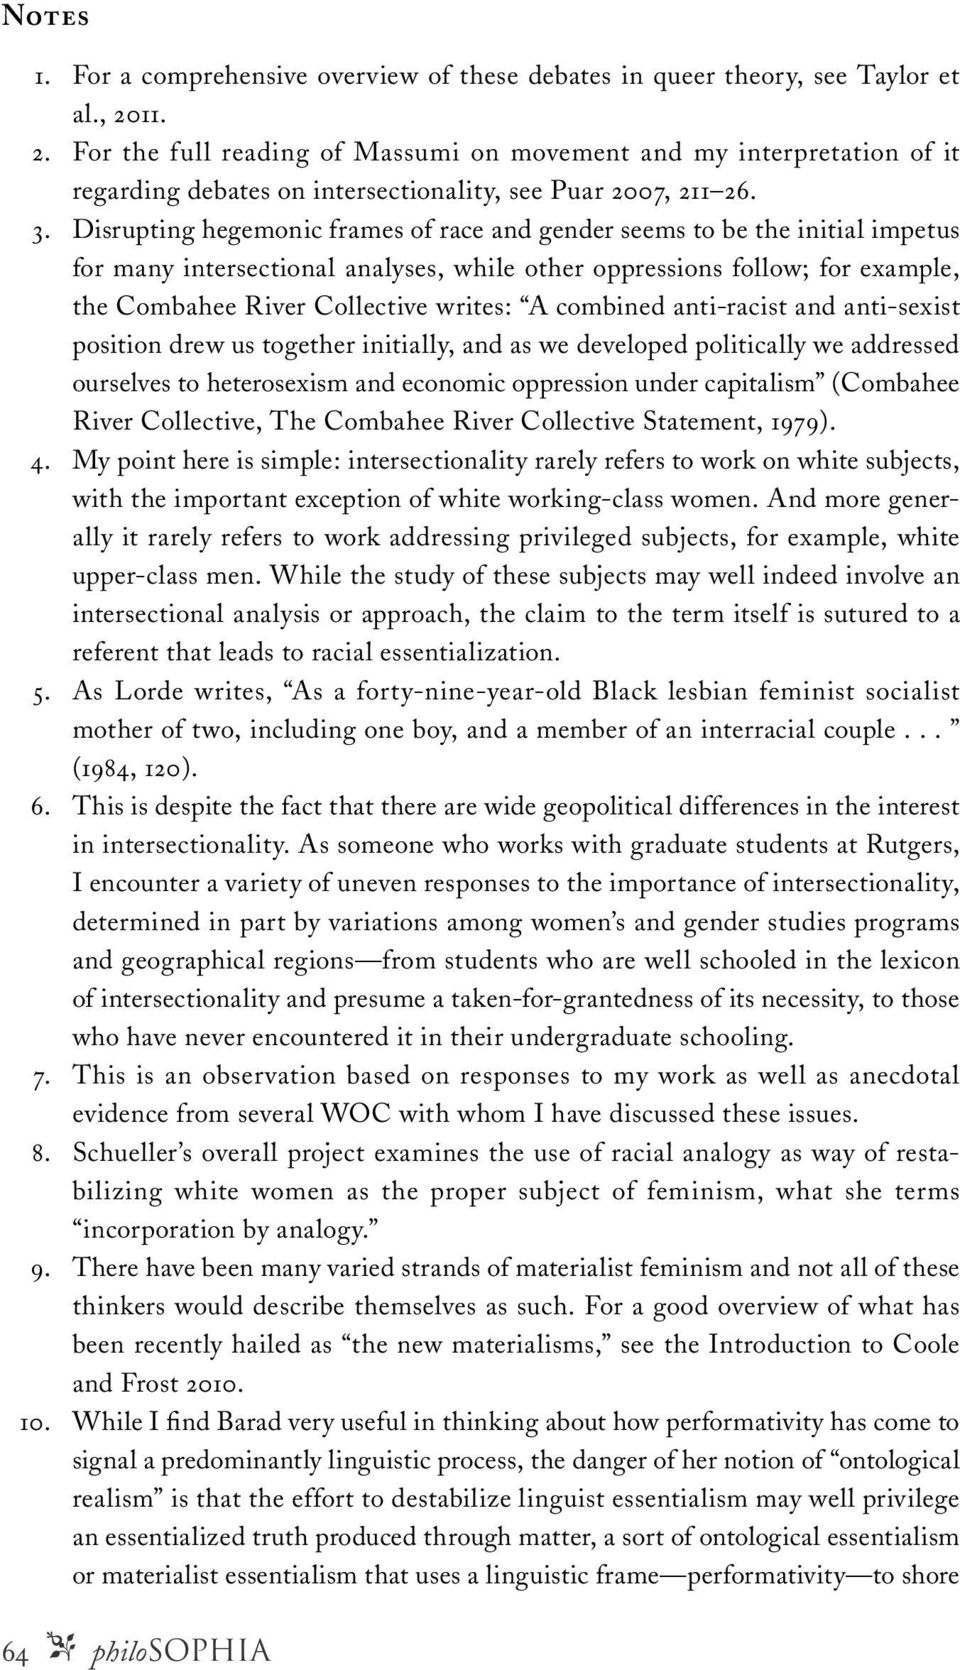 Disrupting hegemonic frames of race and gender seems to be the initial impetus for many intersectional analyses, while other oppressions follow; for example, the Combahee River Collective writes: A